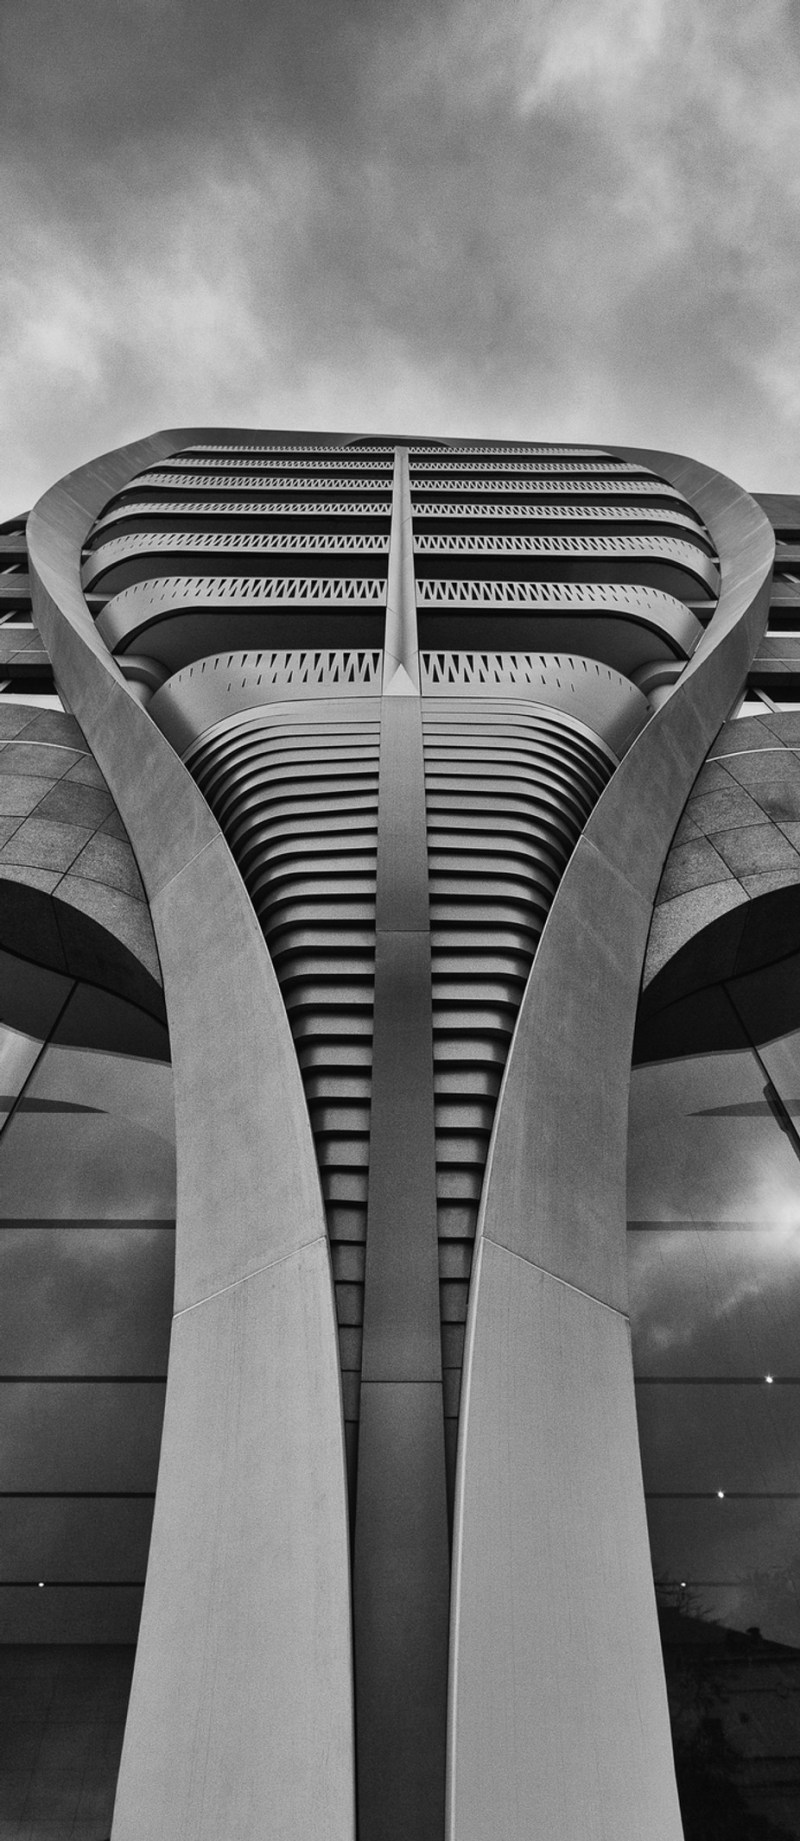 Apple building by Diwagner - Image Of The Month Photo Contest Vol 37